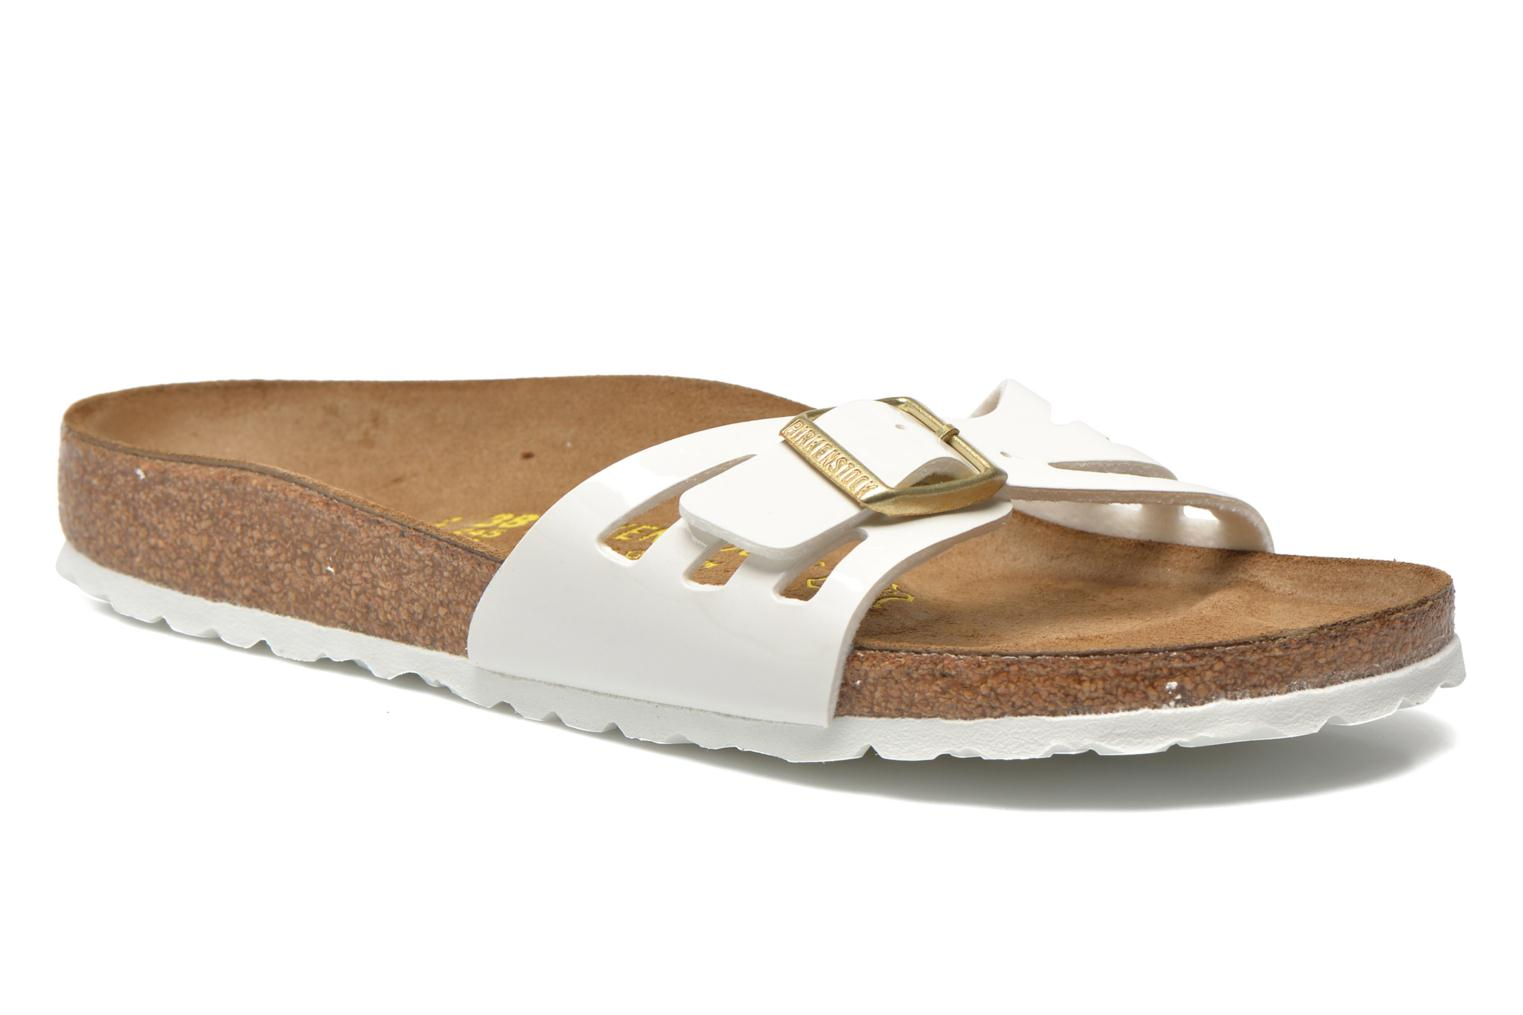 Marques Chaussure femme Birkenstock femme Molina Flor W Vernis Blanc / Boucle Or